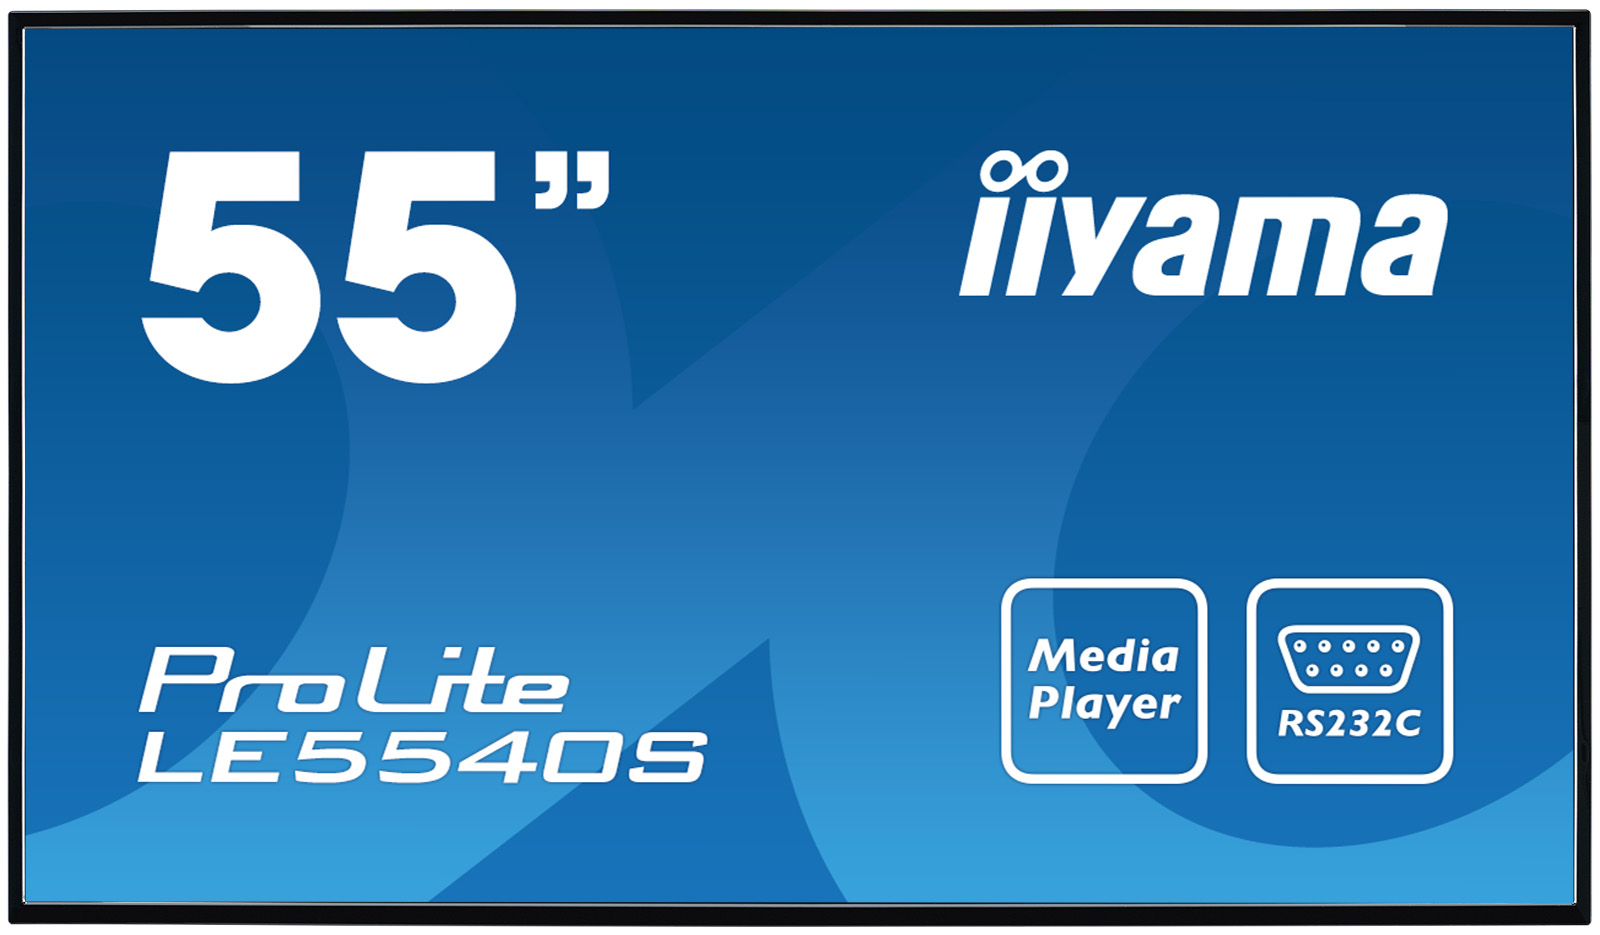 "55"" LCD iiyama ProLite LE5540S-B1 -FullHD,IPS, 8ms, 350cd, USB 2.0 media player, RJ45, RS232C,repro"